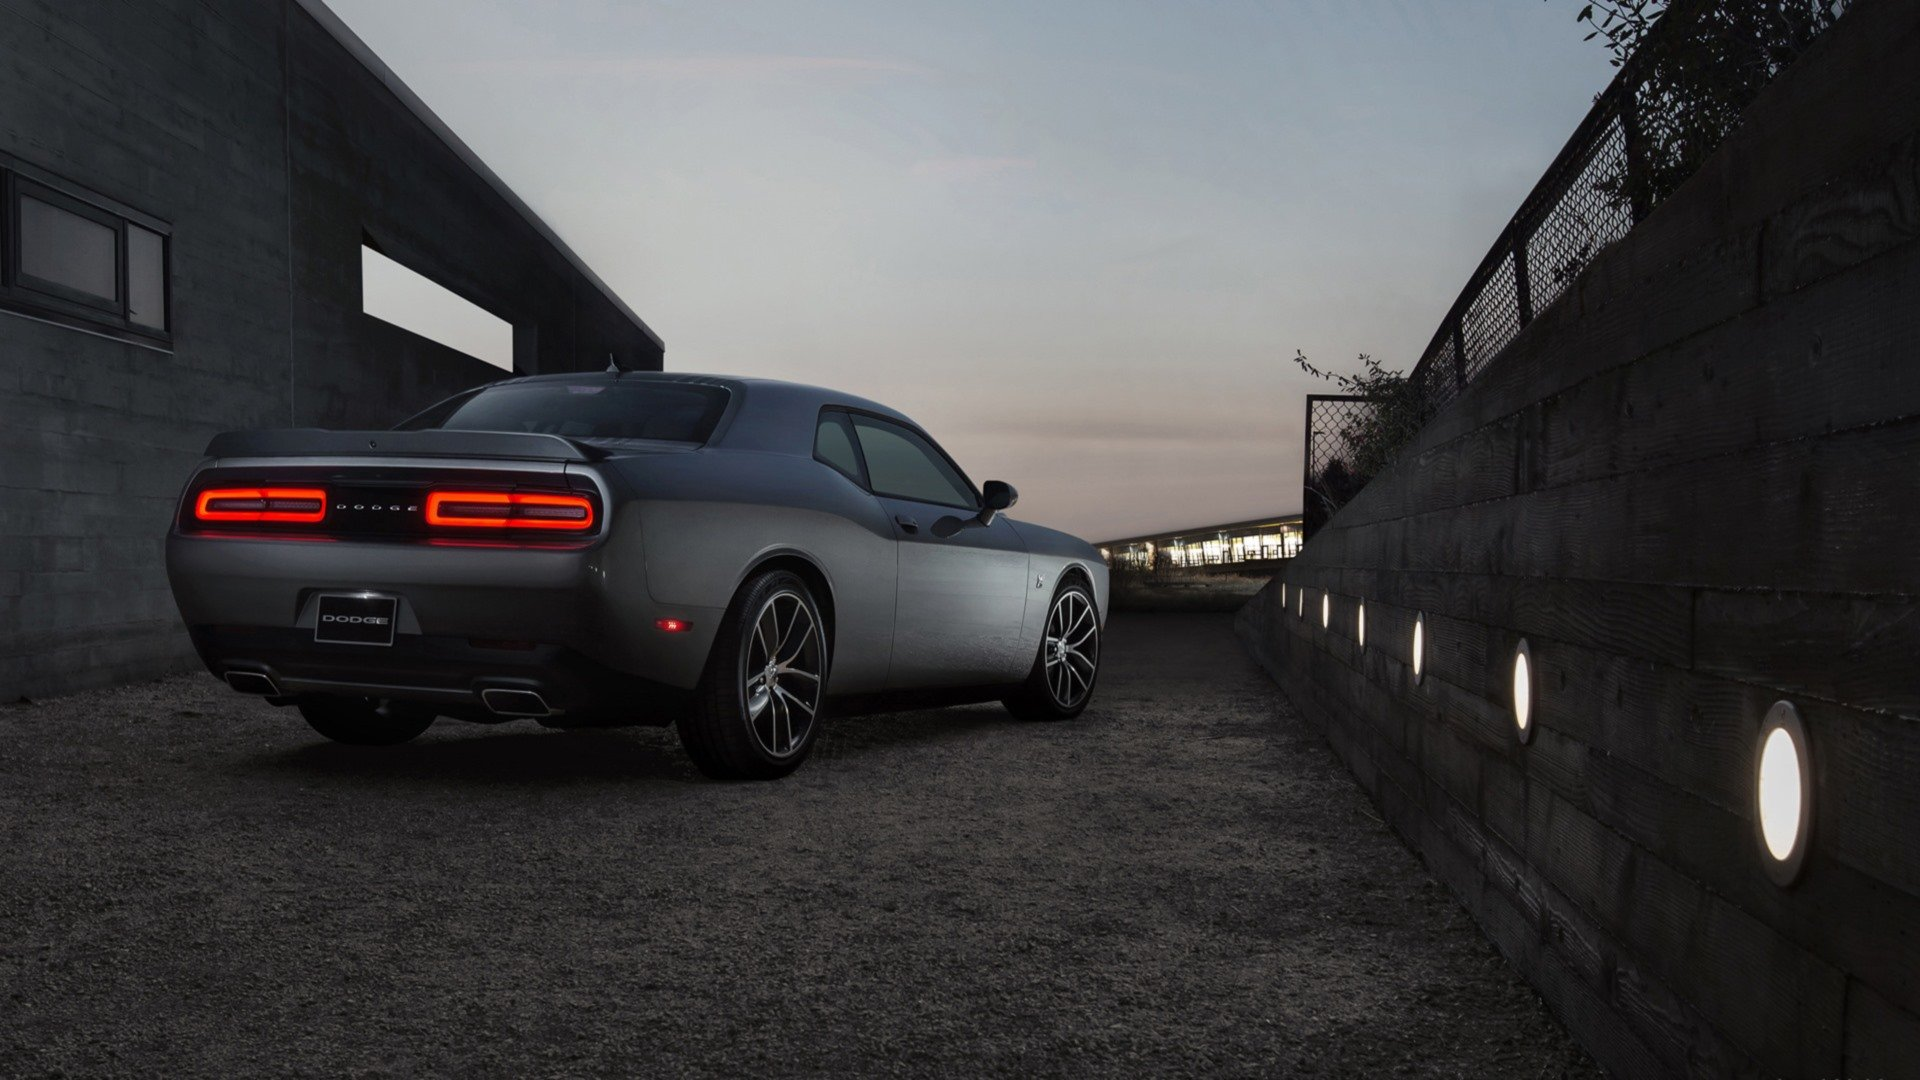 Download Full Hd 1080p Dodge Challenger Computer Wallpaper Id 231810 For Free